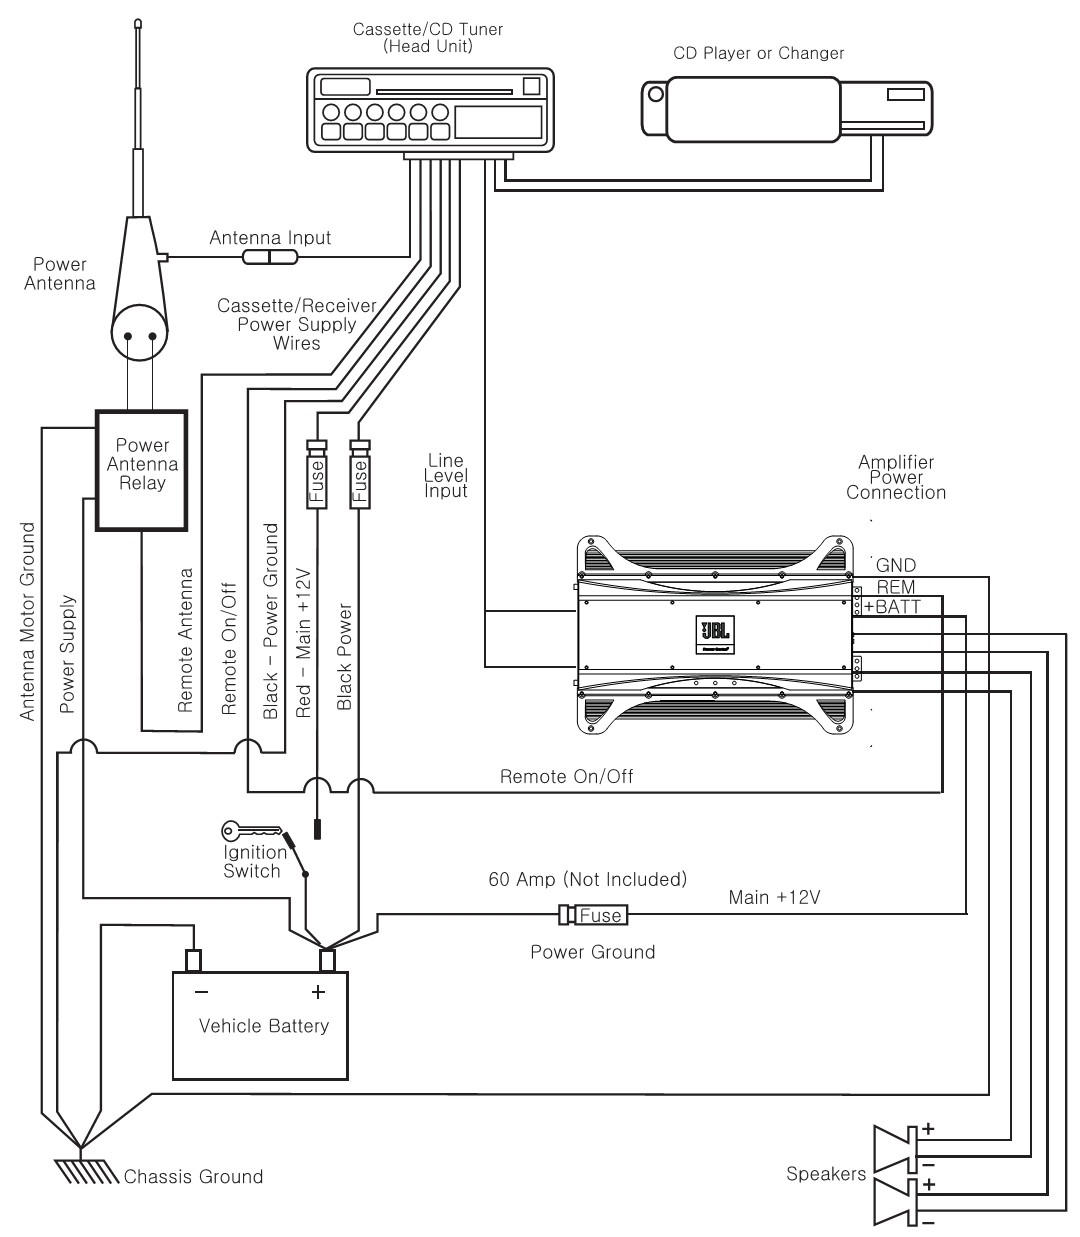 hight resolution of 30 amp shore power wiring diagram kenwood kac m1804 wiring diagram 4 channel and unique